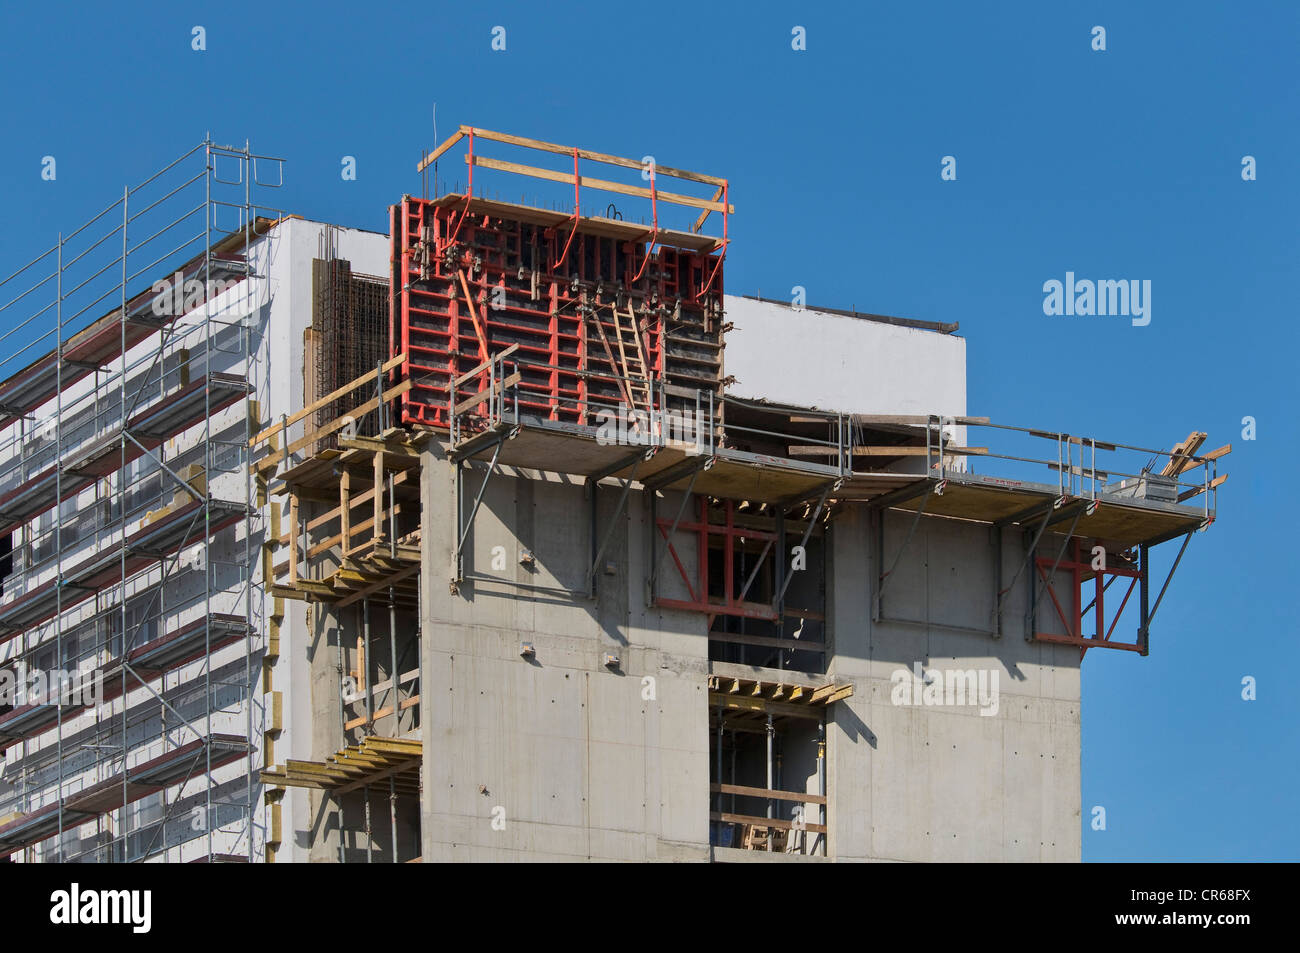 Construction of a building, cladding of the new components with scaffolding - Stock Image